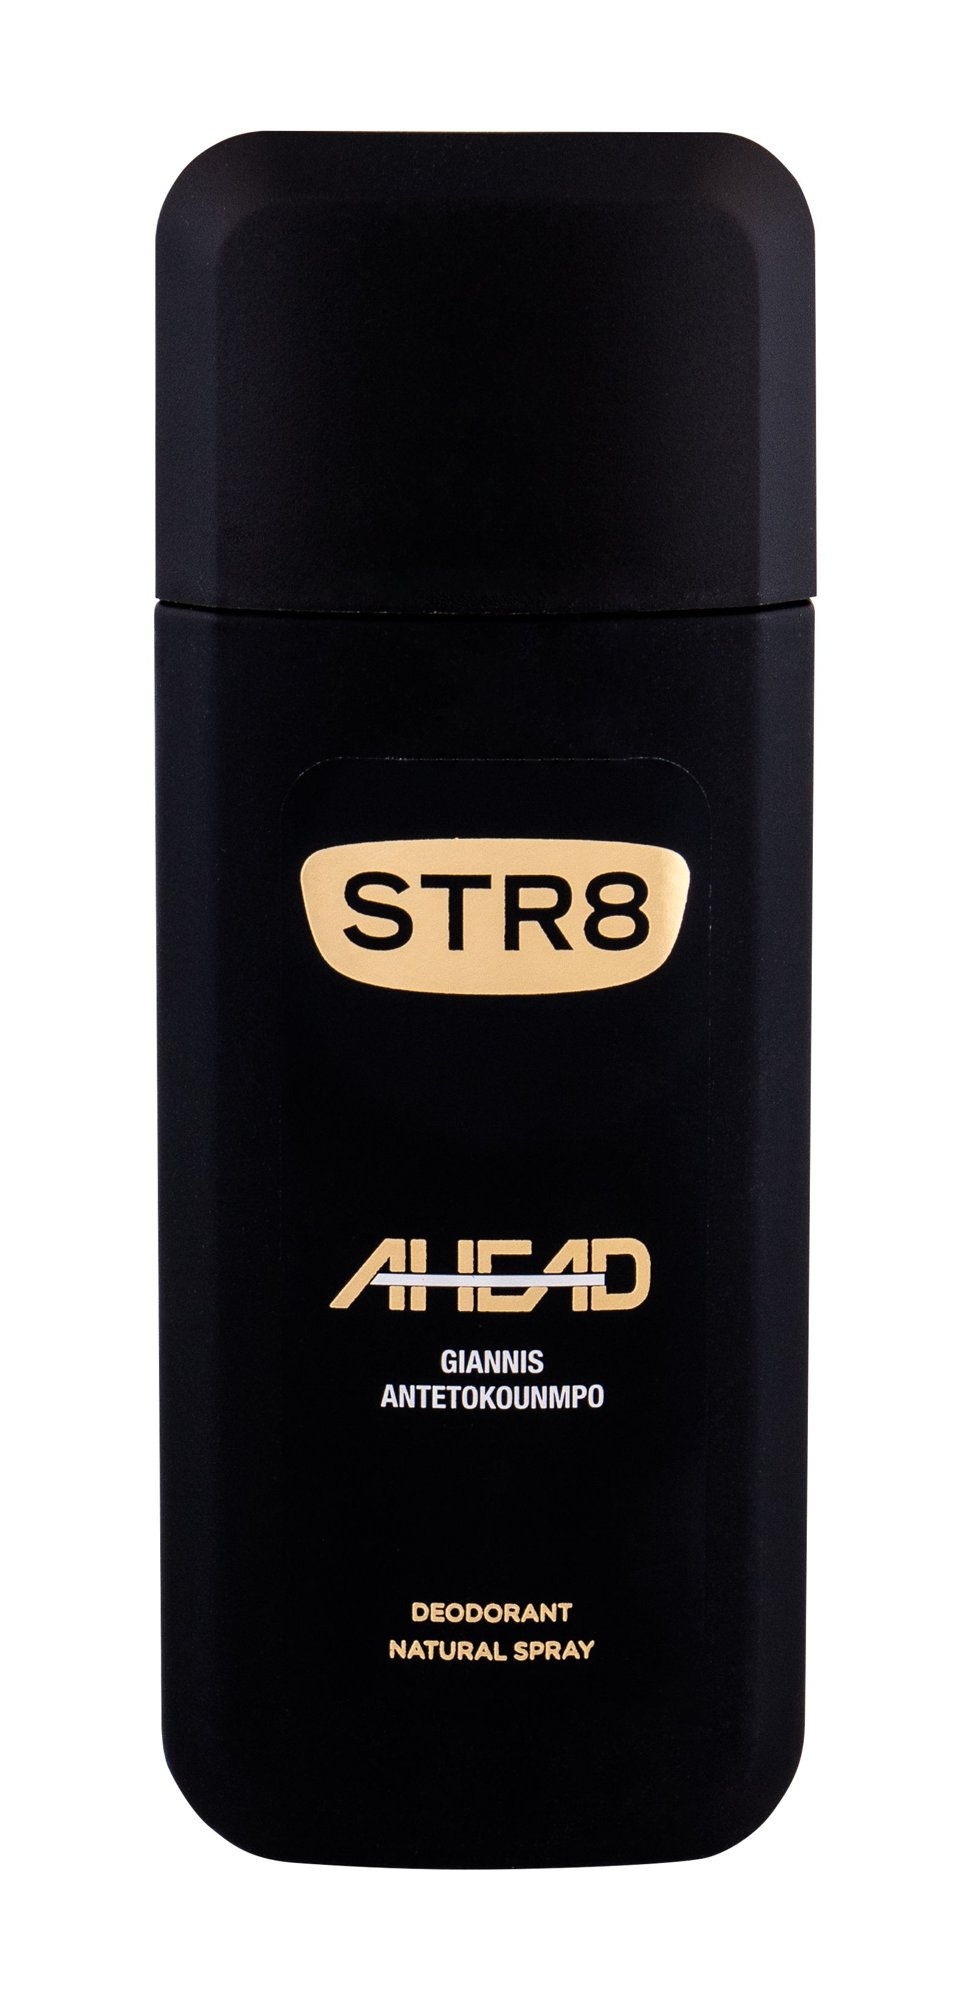 STR8 Ahead Deodorant 85ml